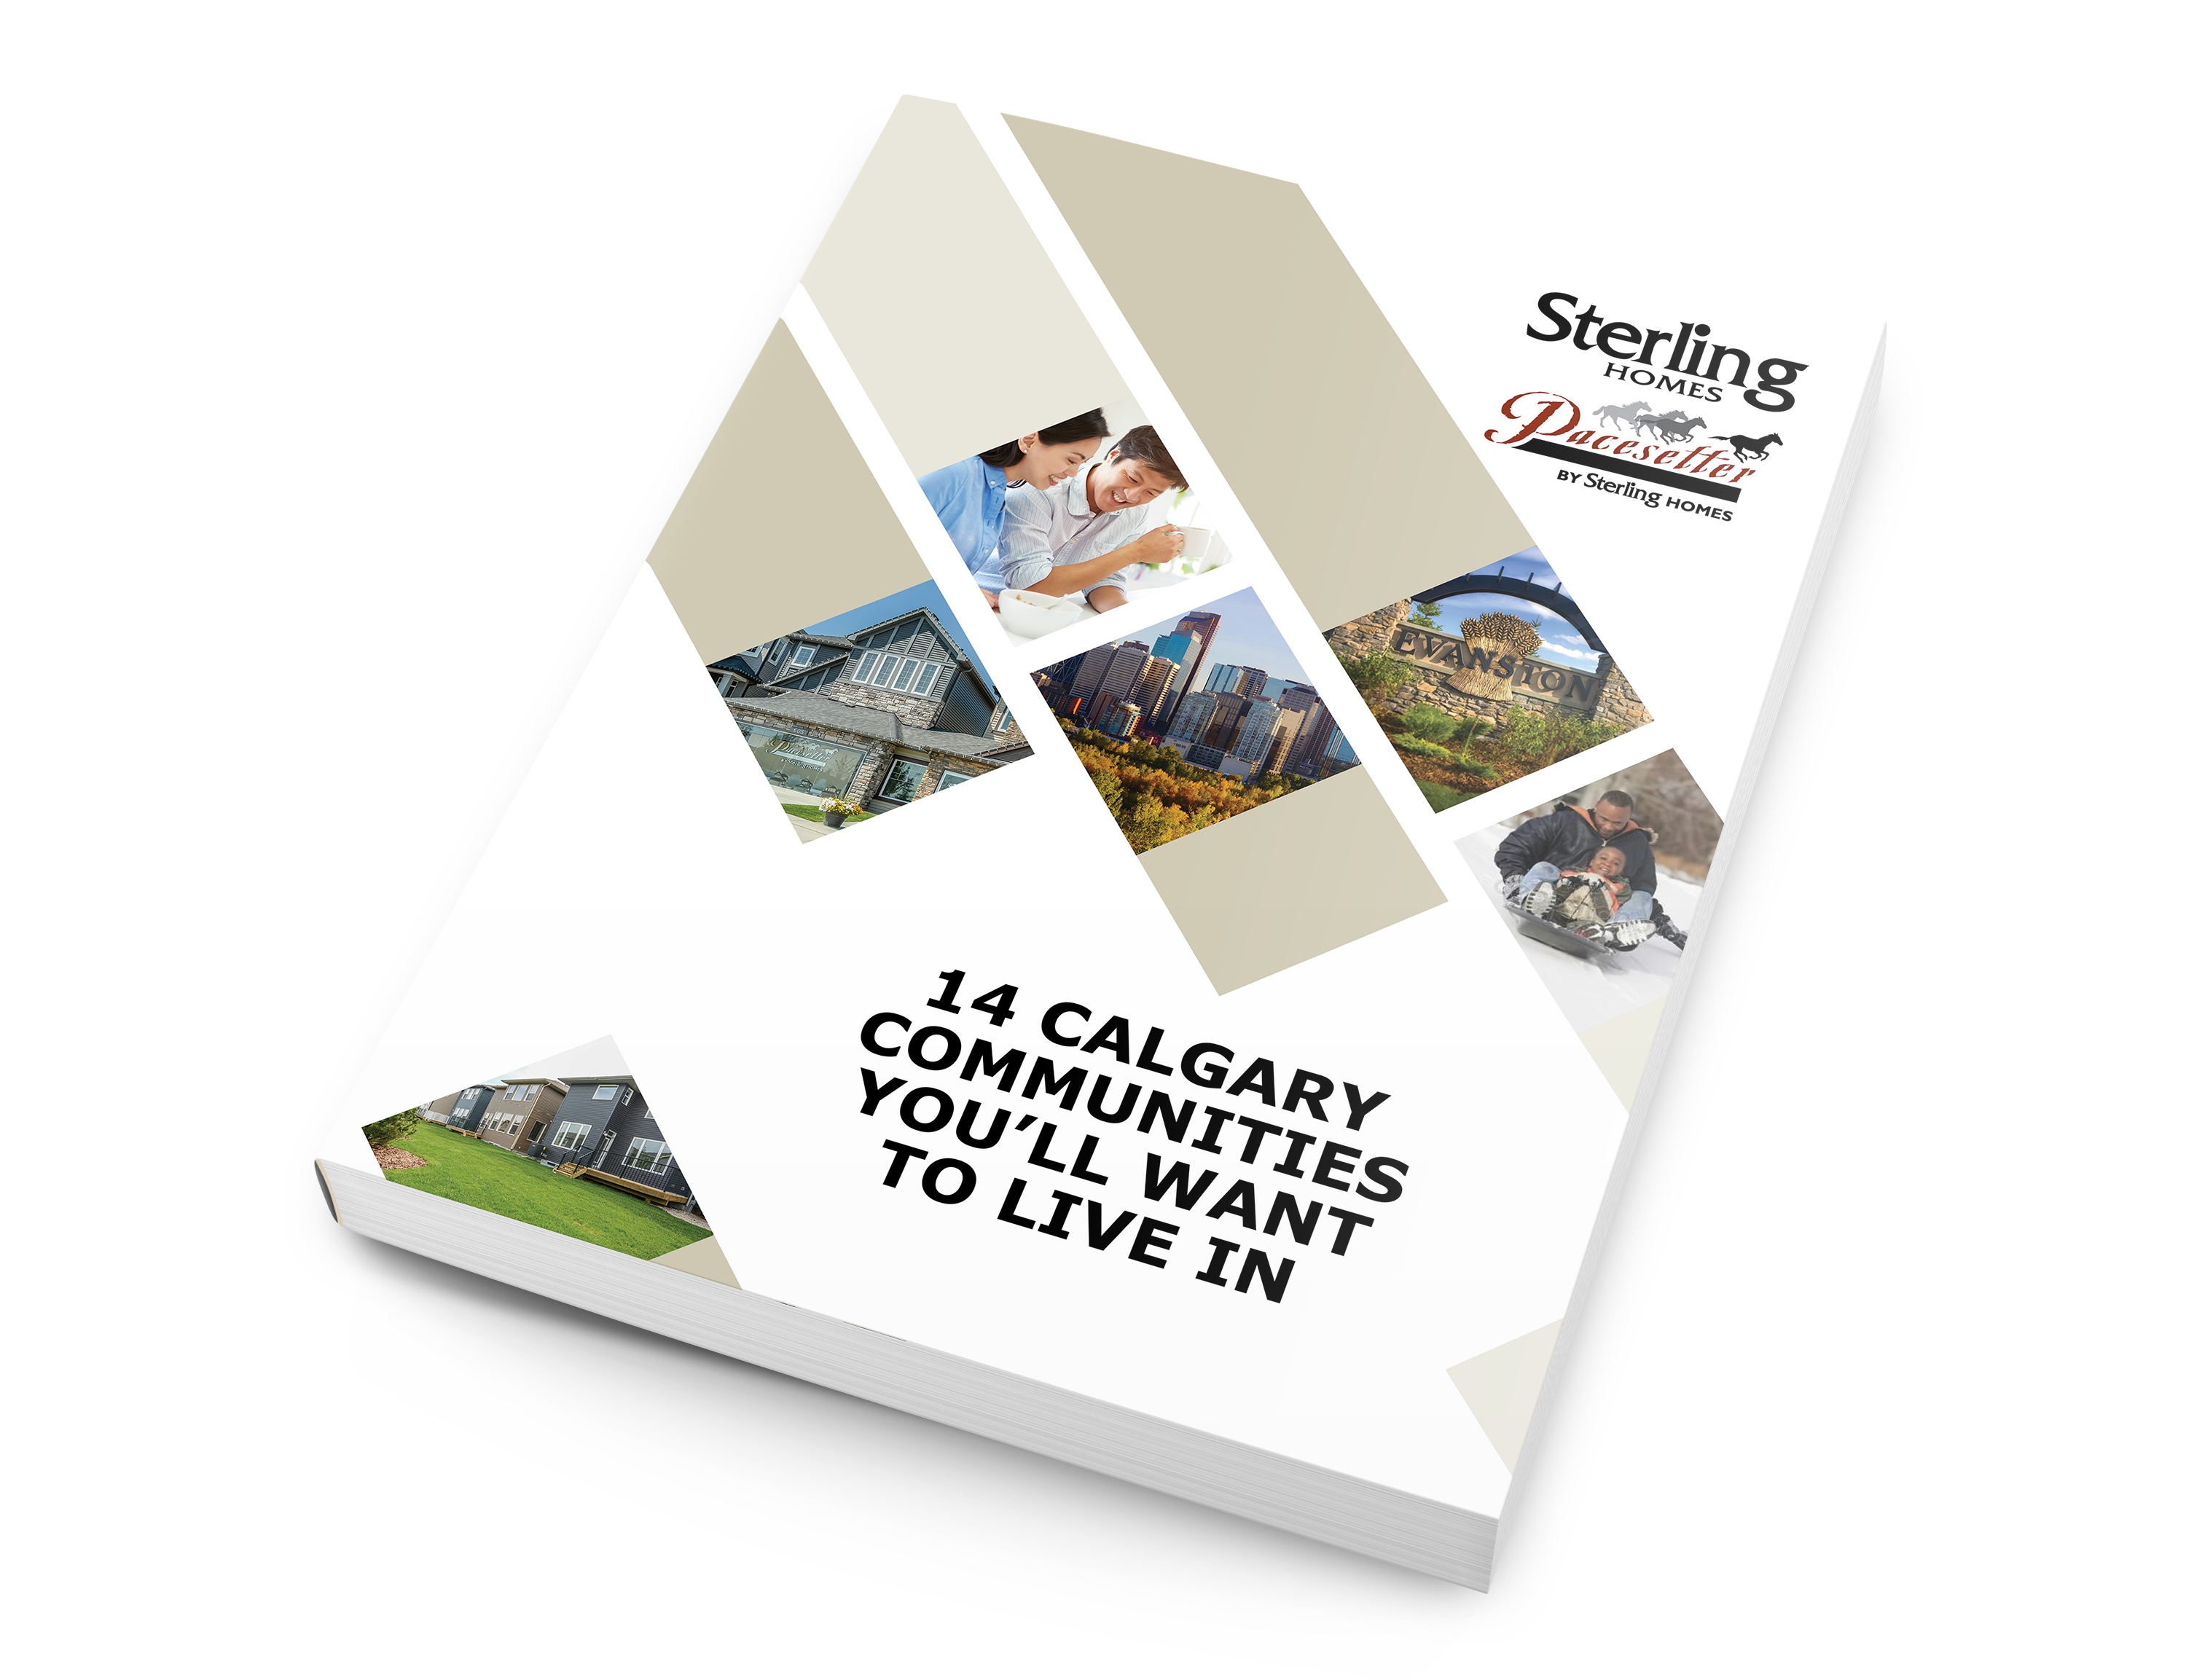 14 calgary communities want live in cover image